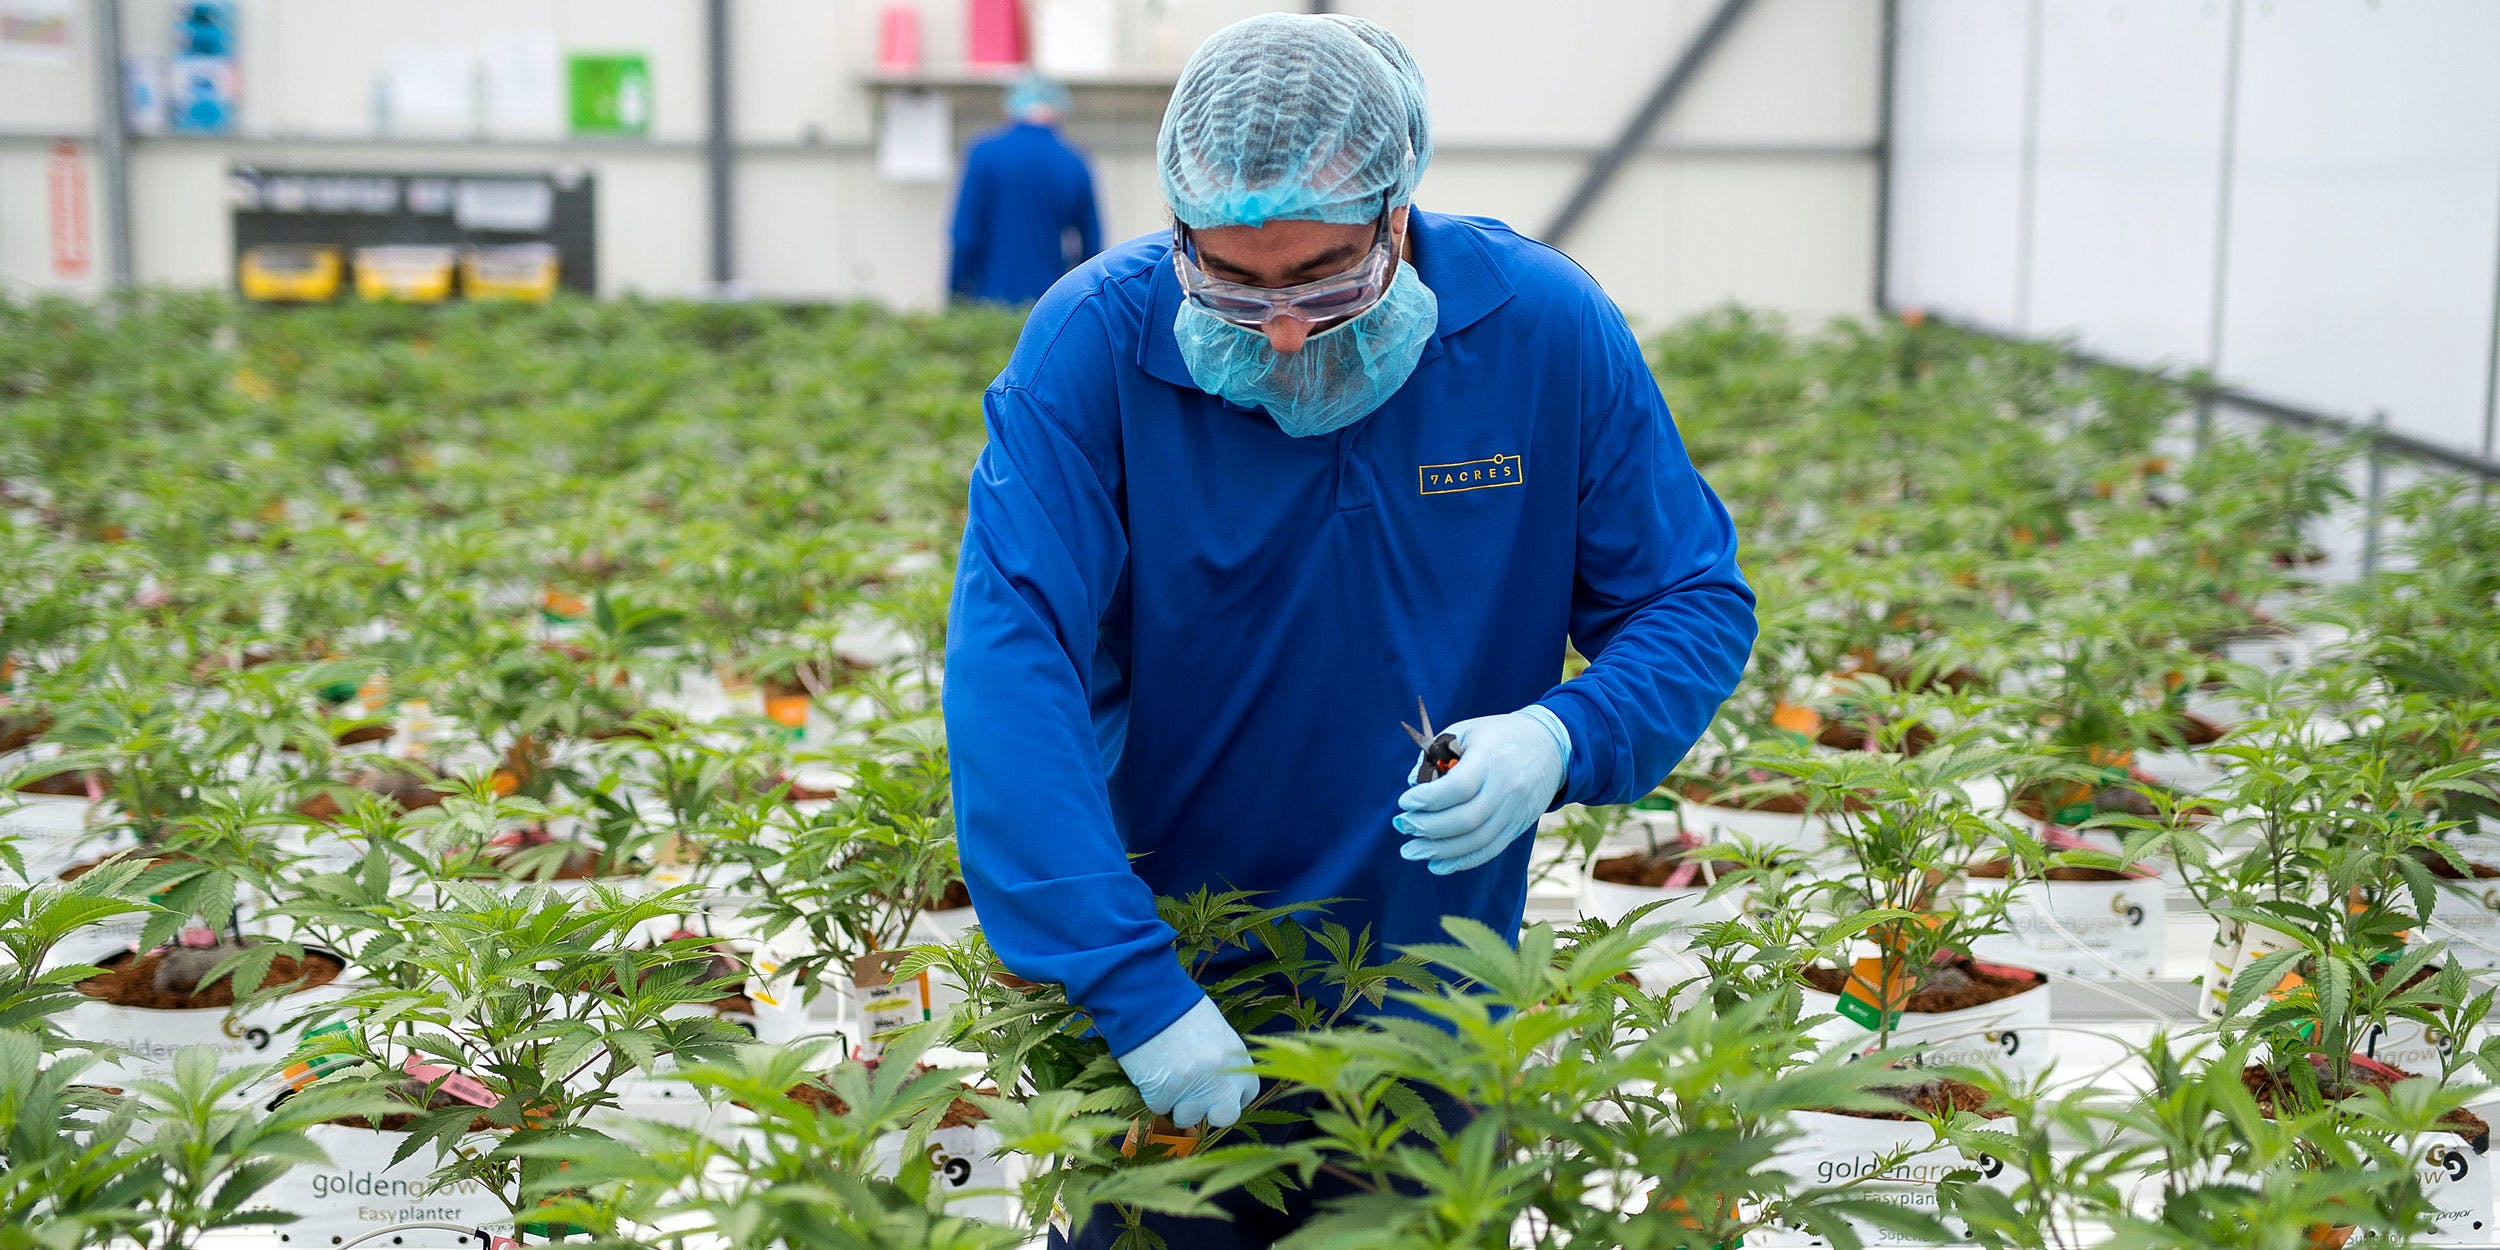 An employee trims cannabis plants in a greenhouse at the 7ACRES facility in Tiverton, Ontario, Canada, on Tuesday, March 13, 2018. (Photo by James MacDonald/Bloomberg via Getty Images)